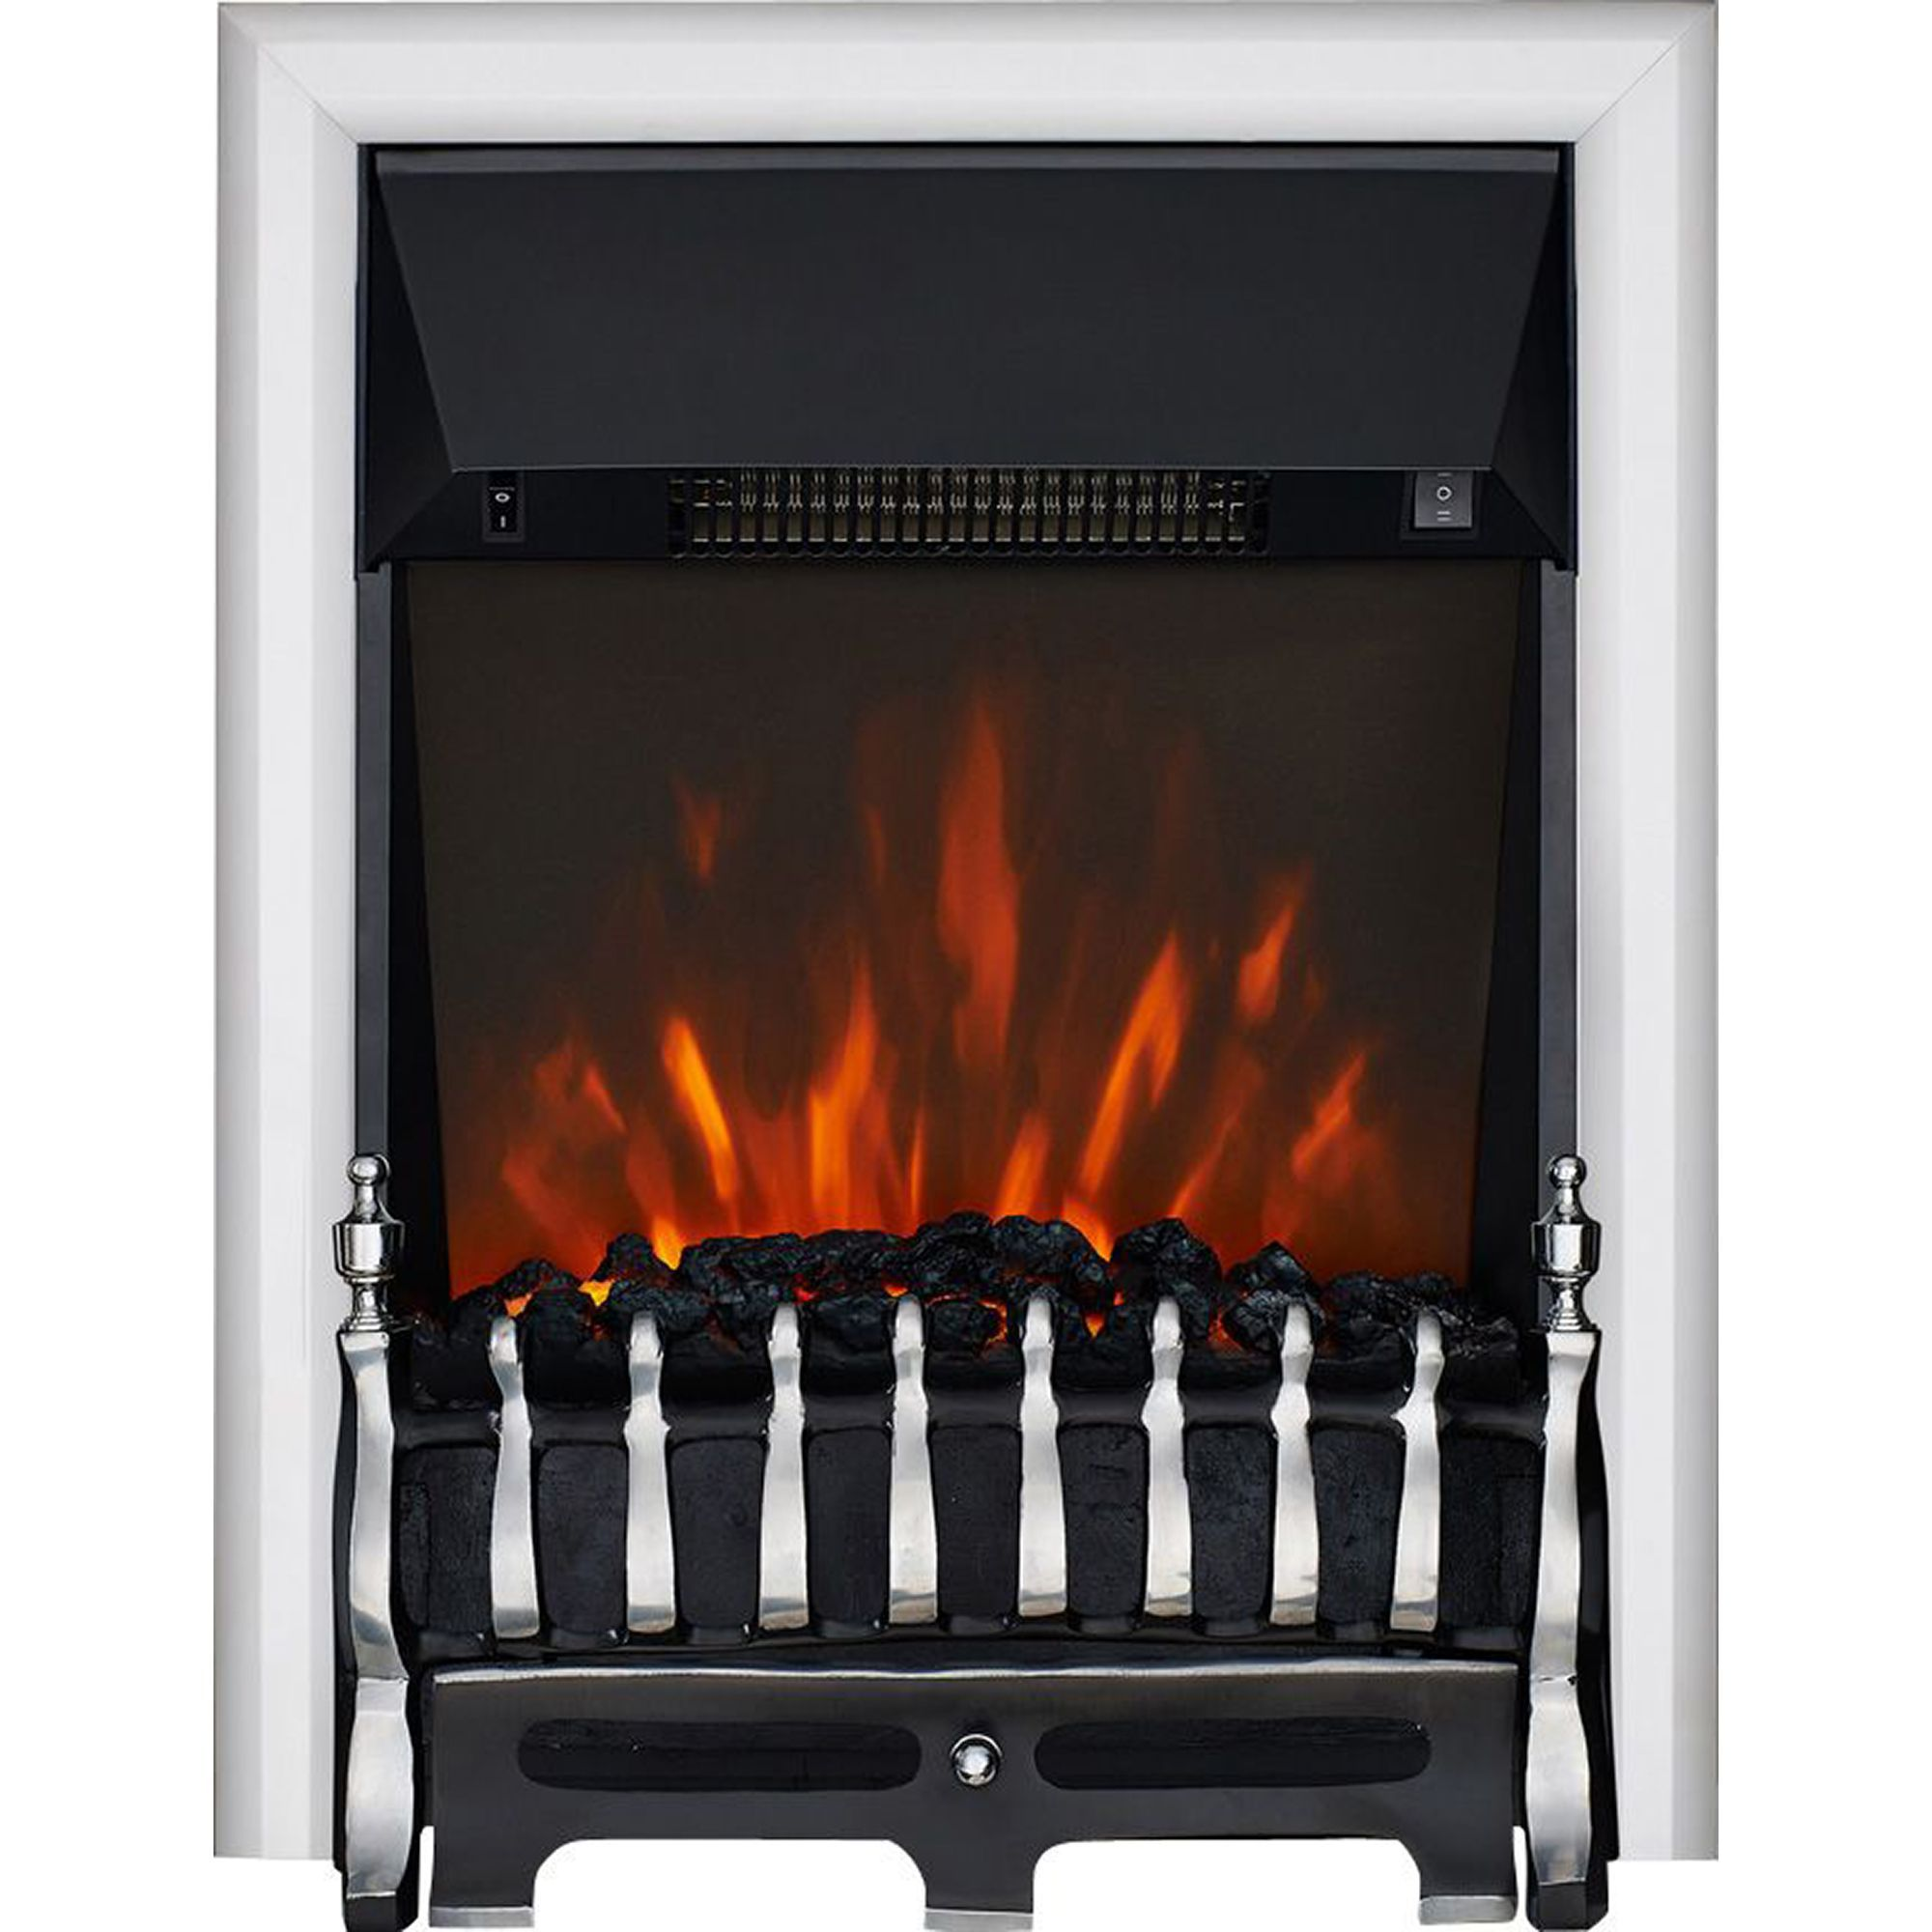 Focal Point Electric Fire: Focal Point Blenheim Chrome Effect Electric Fire